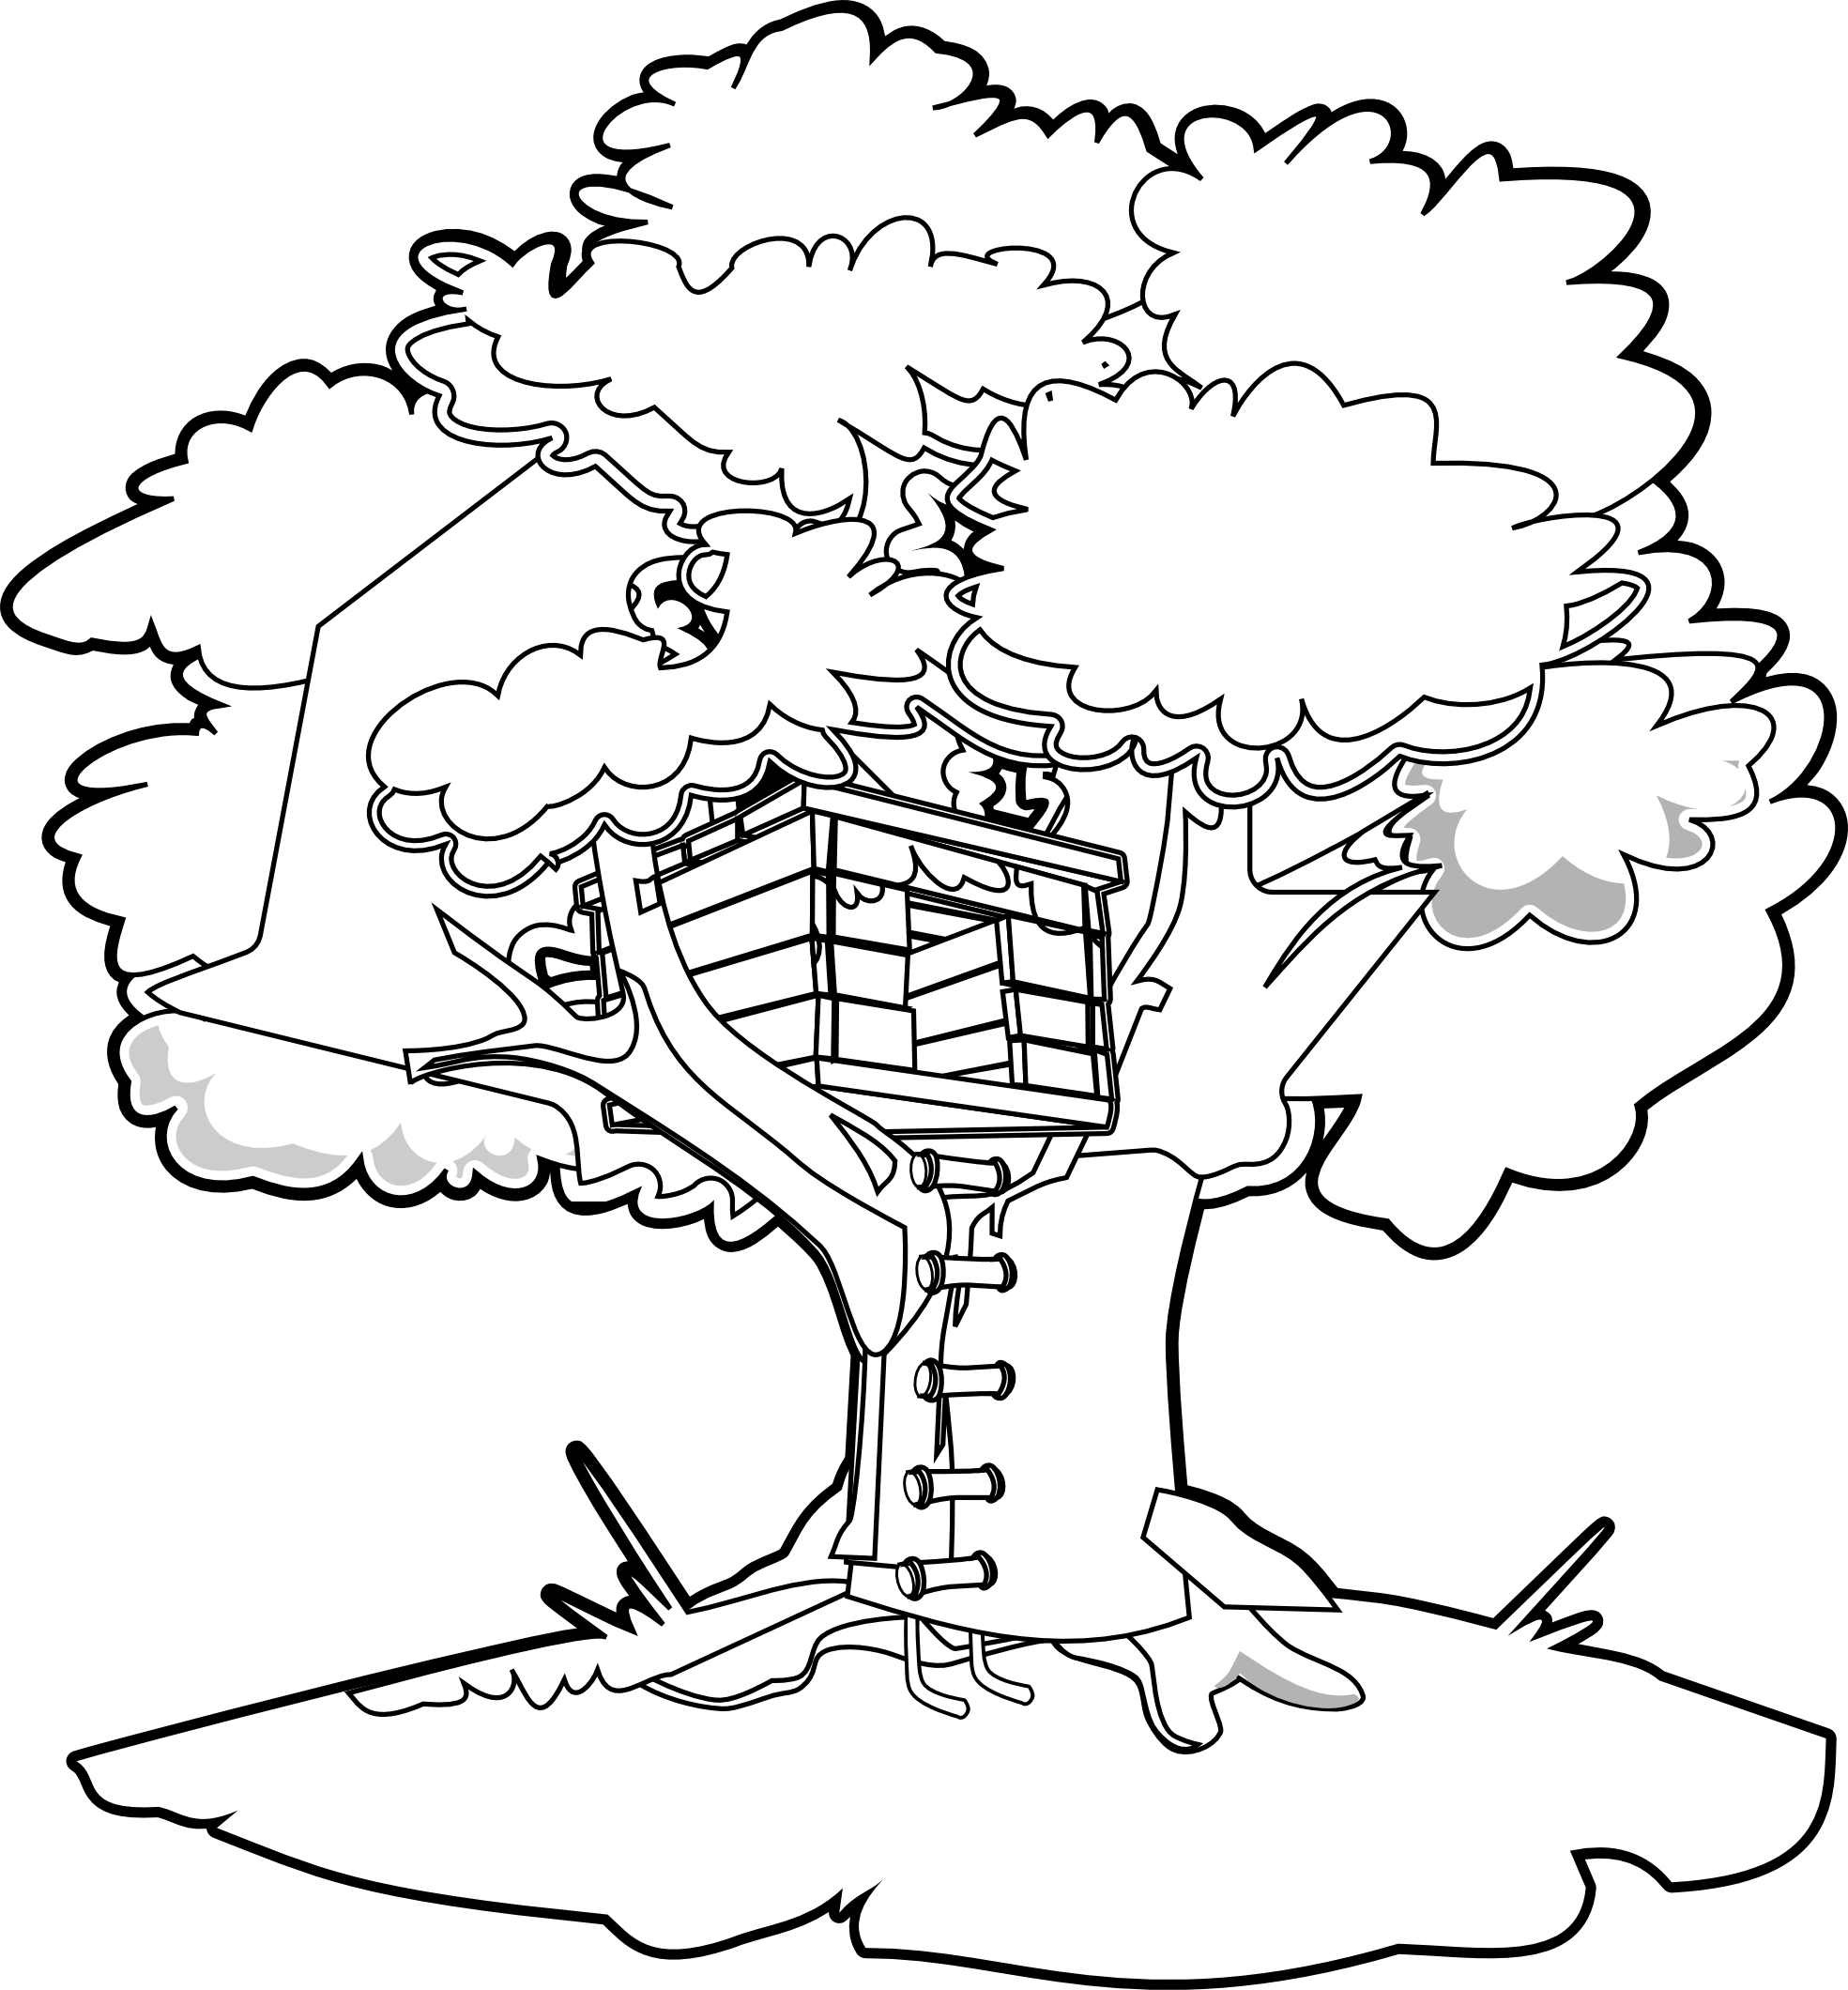 clipartist.net » Clip Art » tree house black white line art SVG.